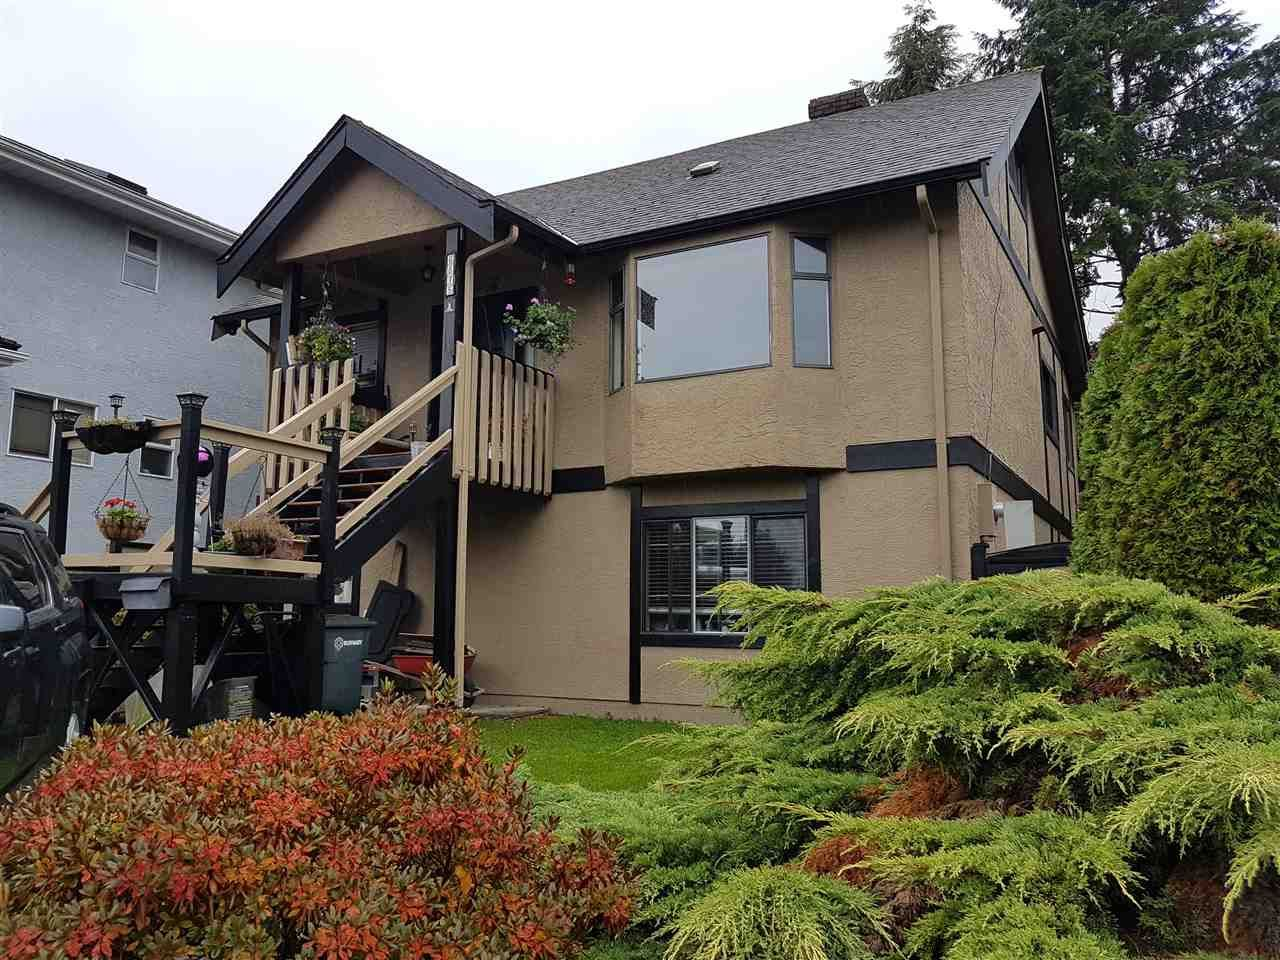 Main Photo: 6875 NOELANI PLACE in Burnaby: Highgate House/Single Family for sale (Burnaby South)  : MLS®# R2215400